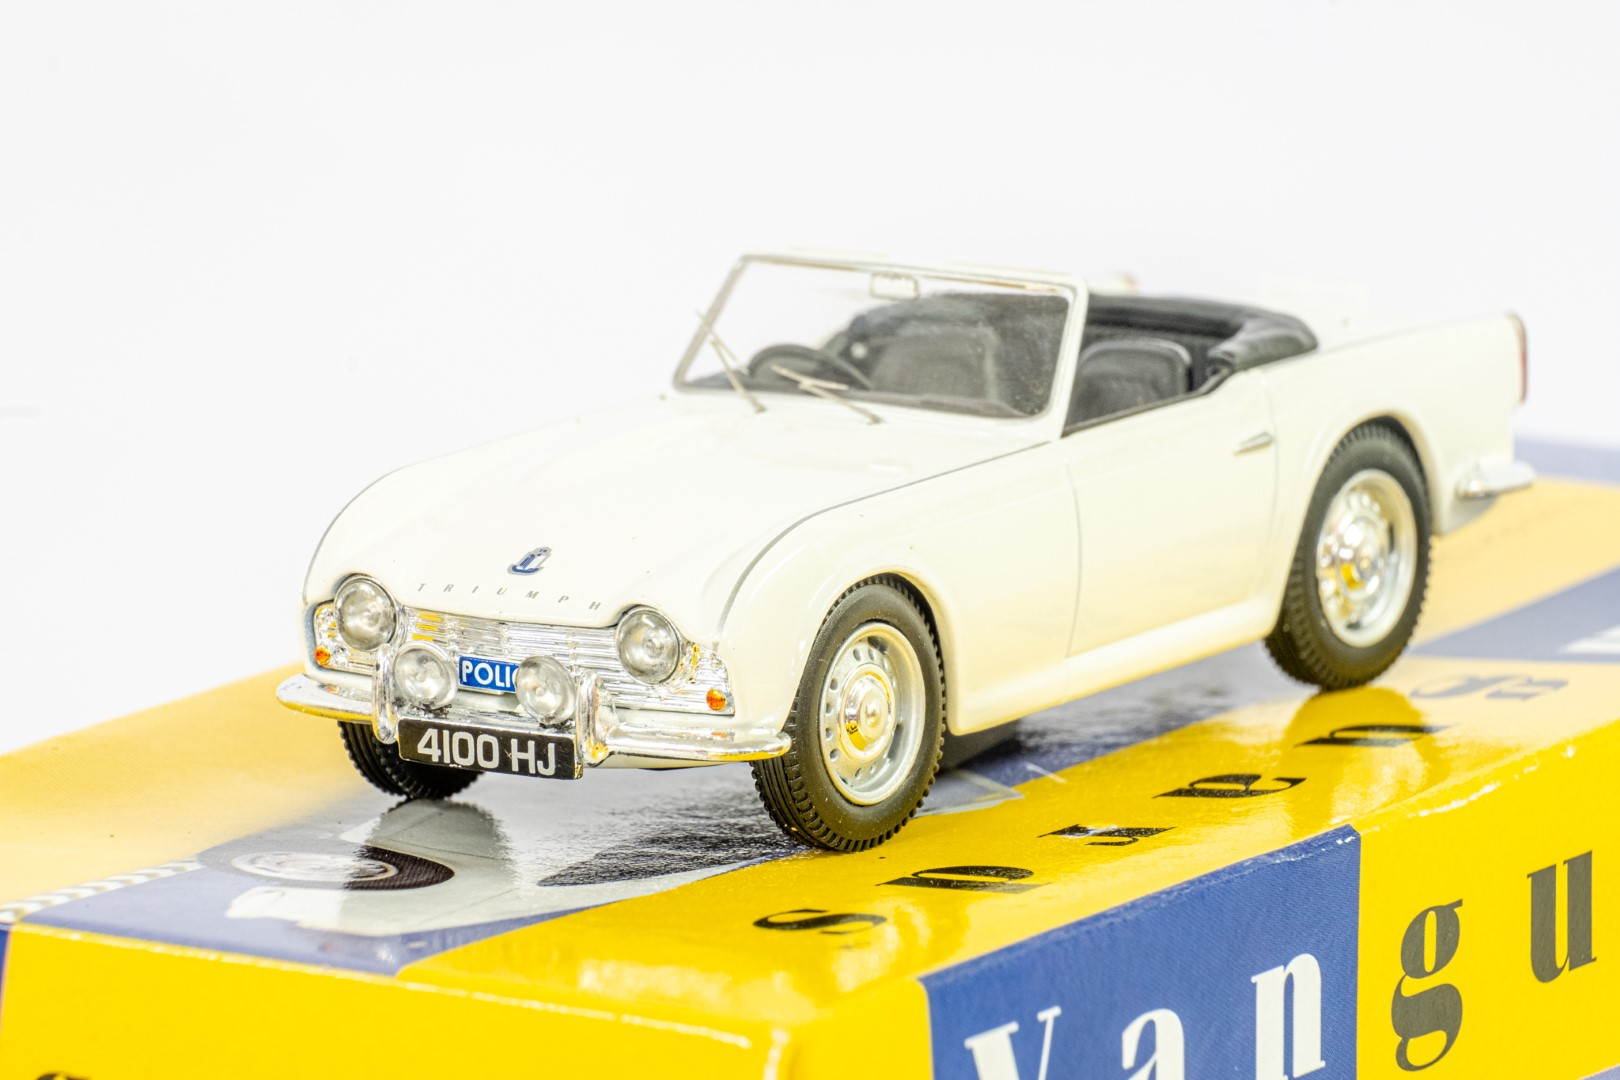 Vanguards Triumph TR4 - Southend On Sea Constabulary - Image 5 of 6